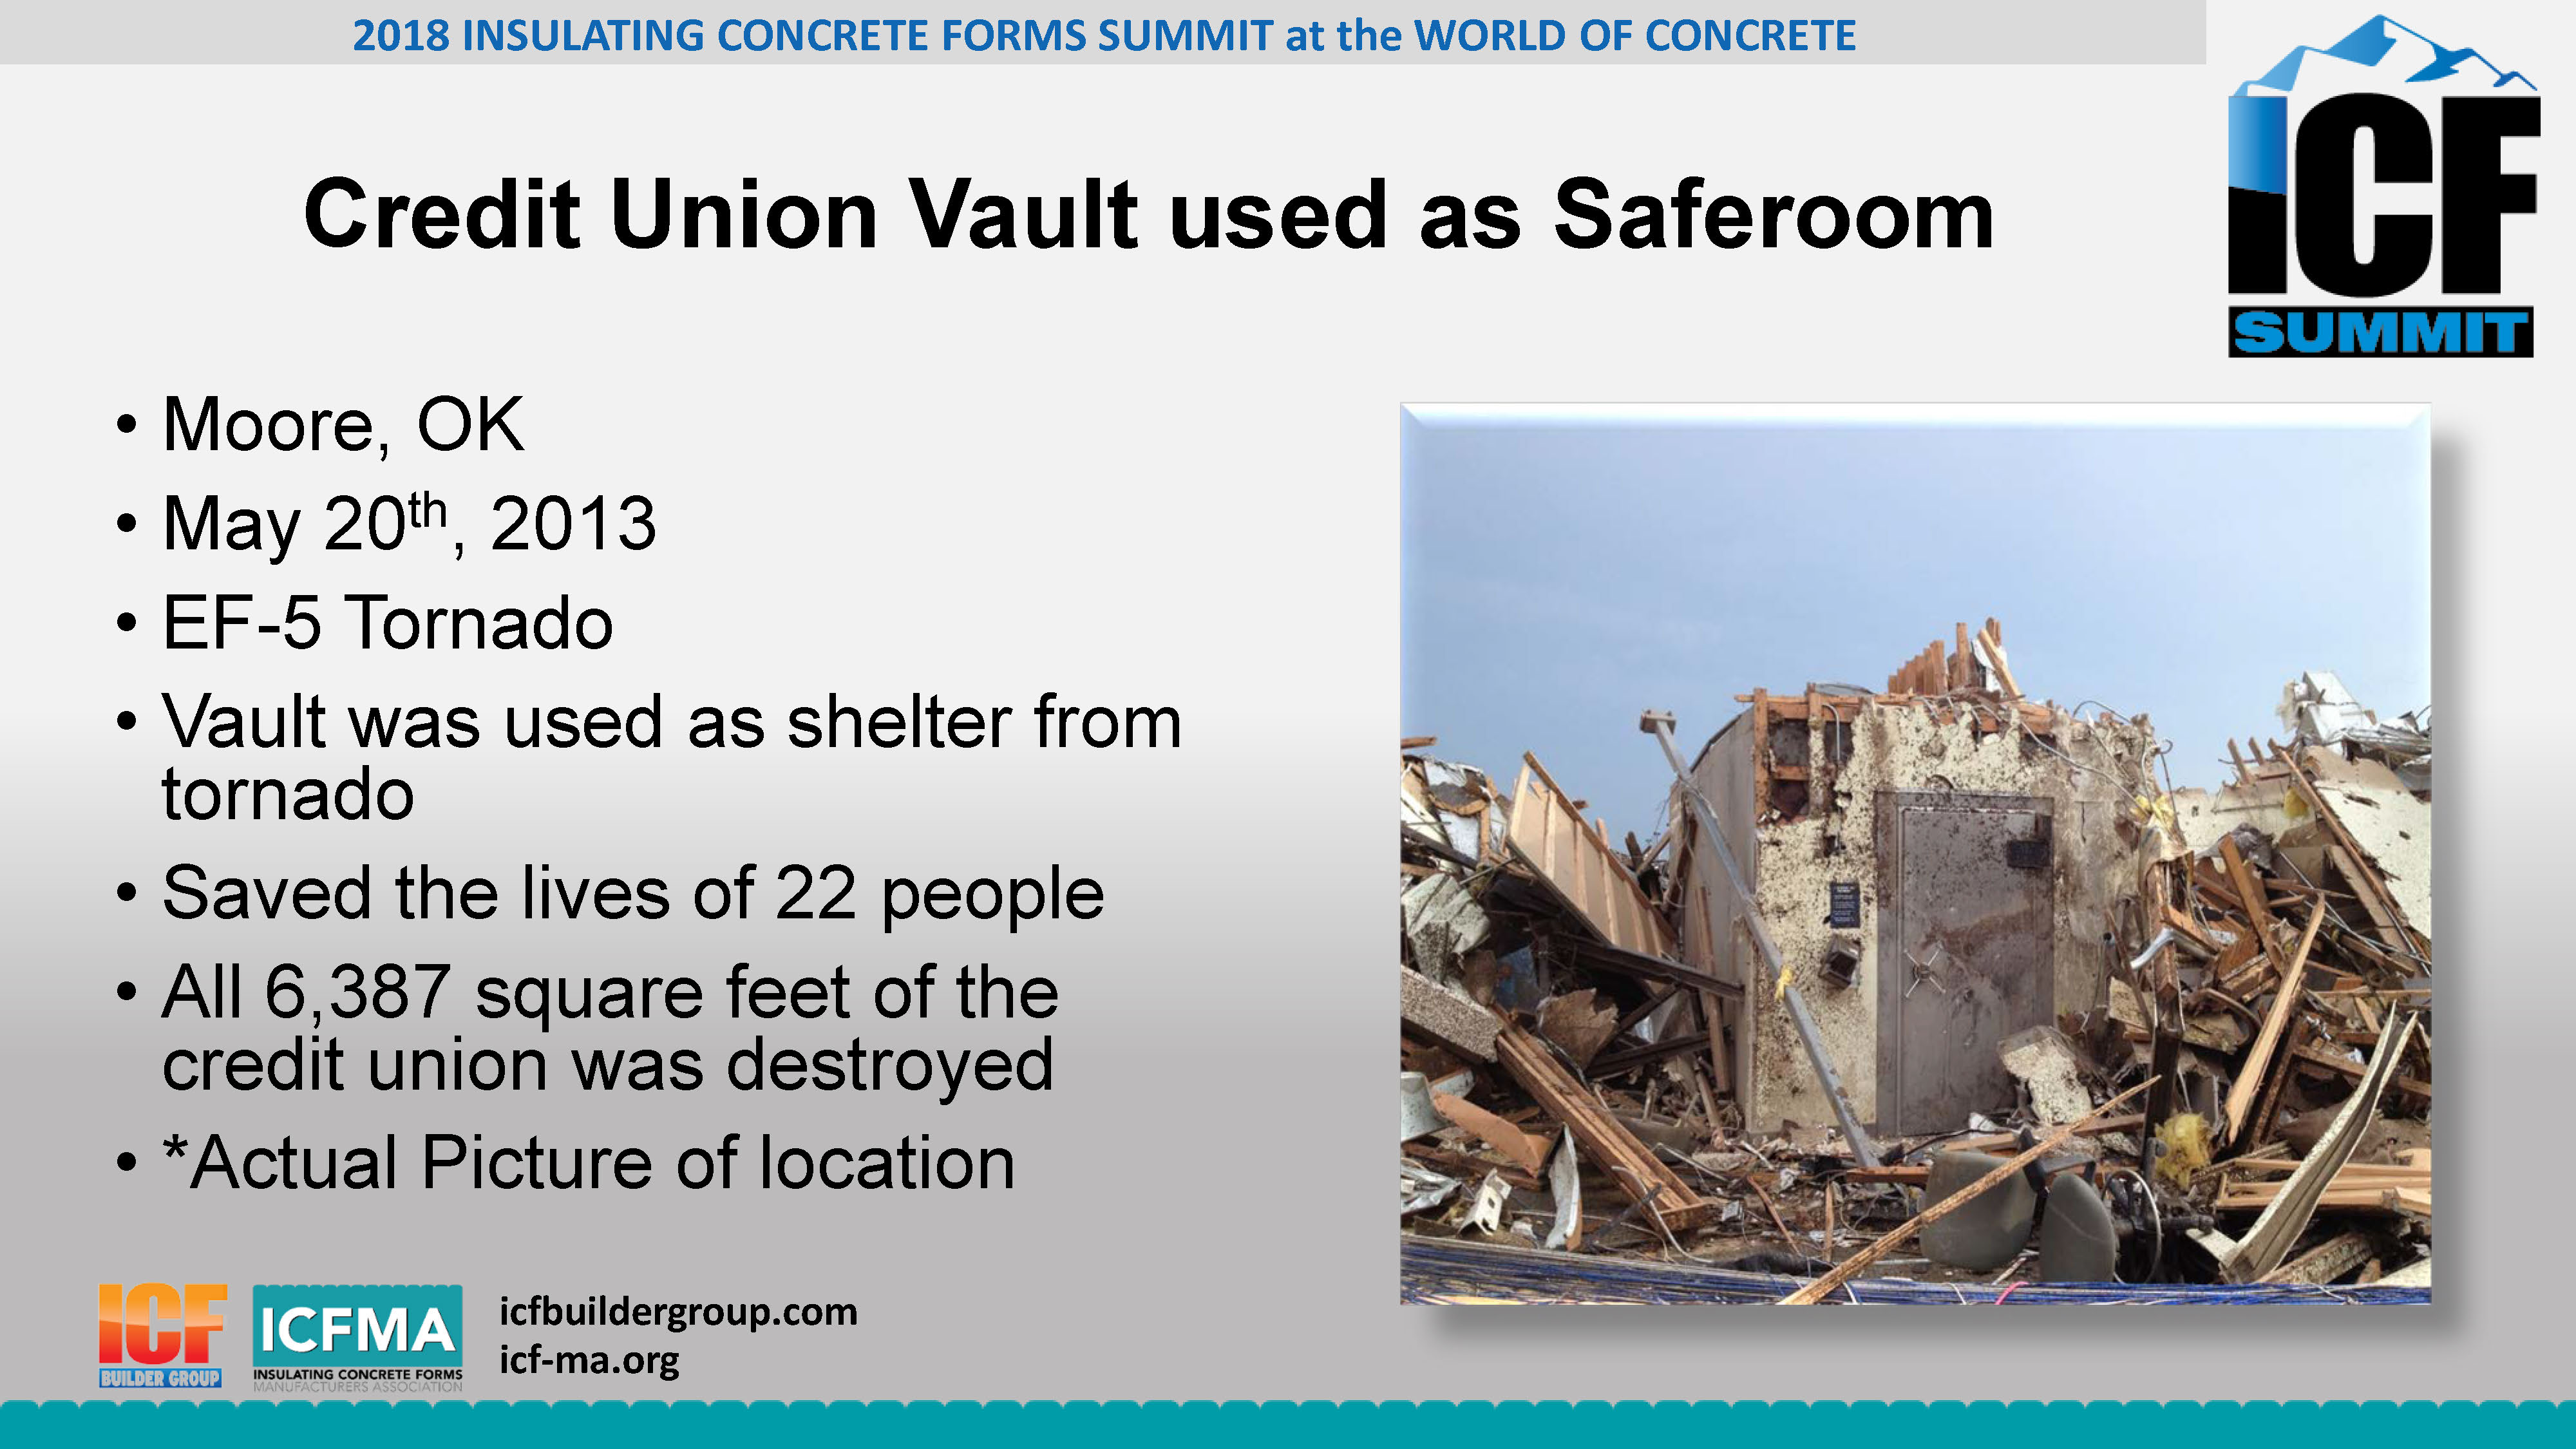 Saferooms Secure Rooms And Community Shelters - Insulating Concrete